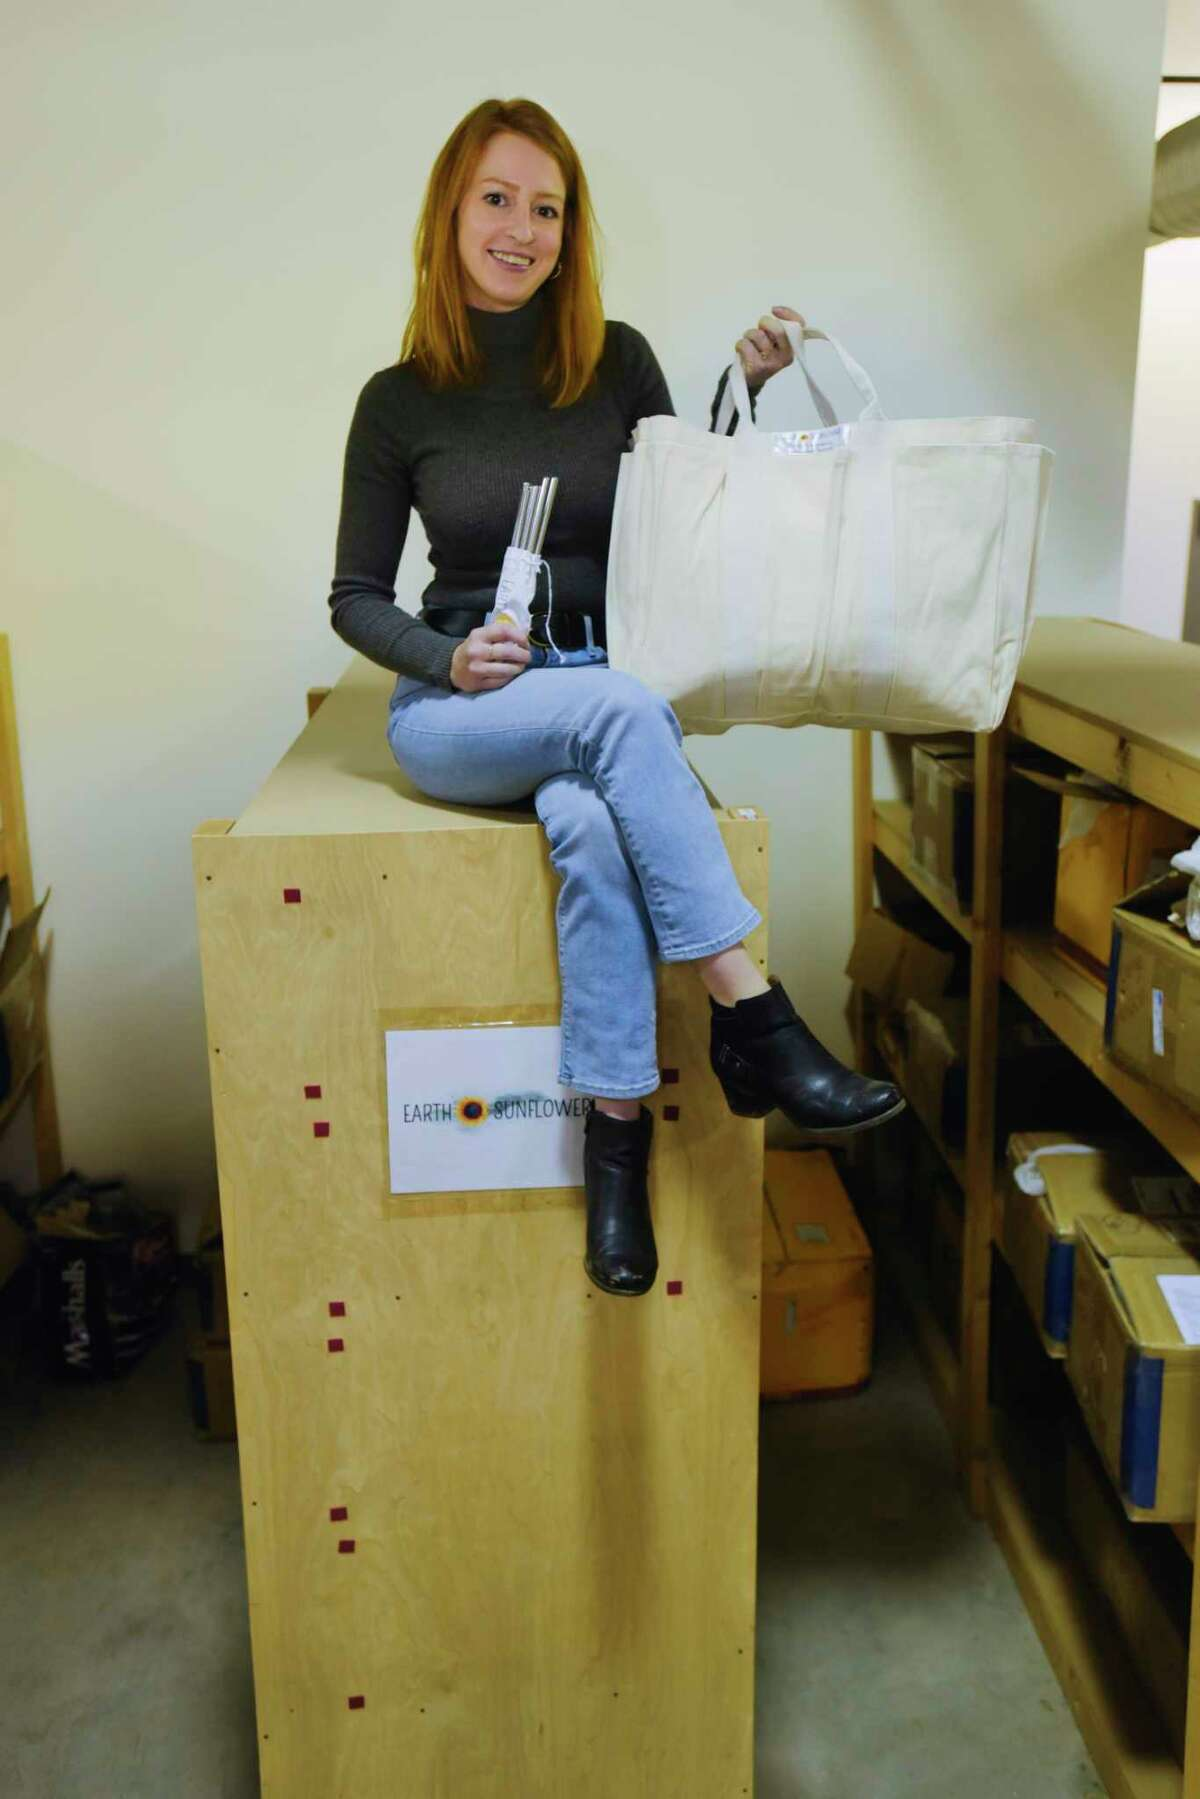 Jill Fecteau, owner of Earth Sunflower, sits on top of shelves holding boxes of the products she sells inside a warehouse where she rents space on Wednesday, Jan. 27, 2021, in Saratoga Springs, N.Y. Fecteau is holding stainless steel straws, which she started her business with, and a certified organic cotton extra large grocery bag with outside pockets, one of her bigger selling items currently. (Paul Buckowski/Times Union)